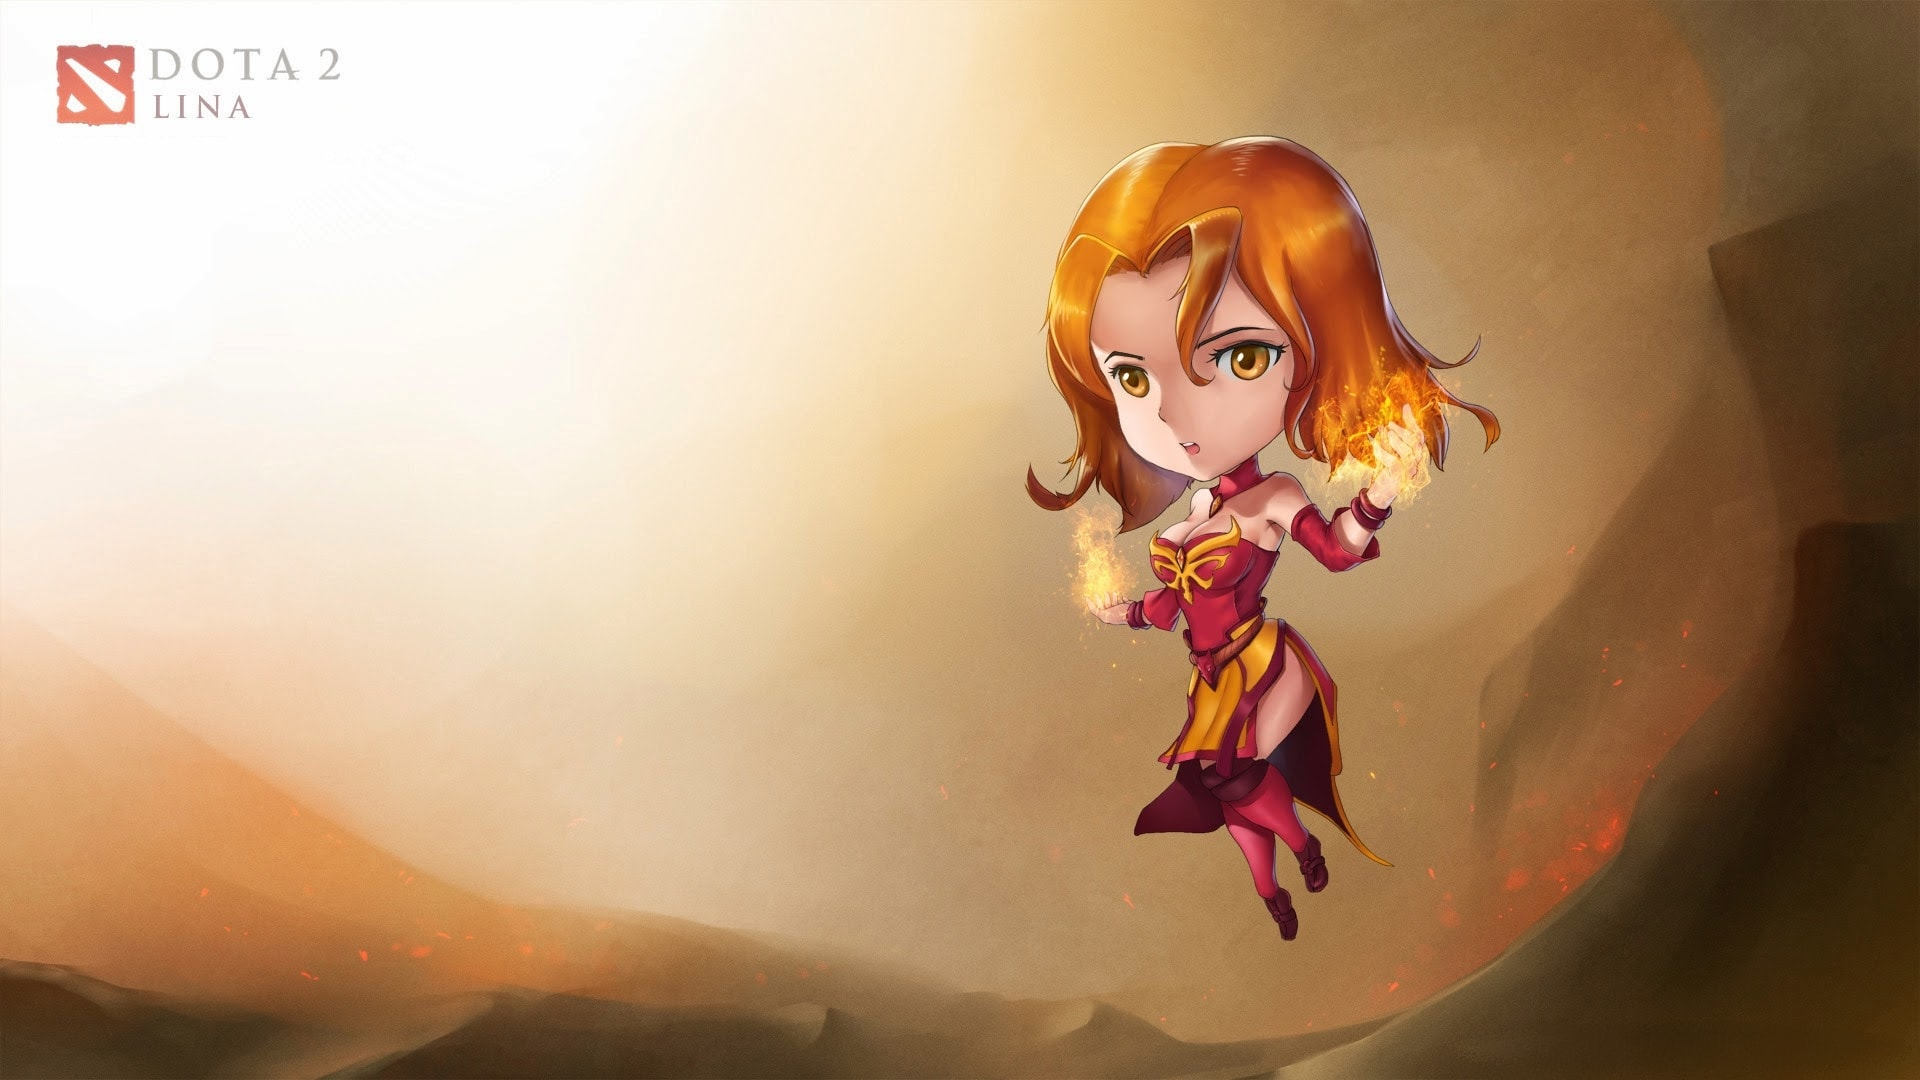 Dota2 : Lina desktop wallpaper